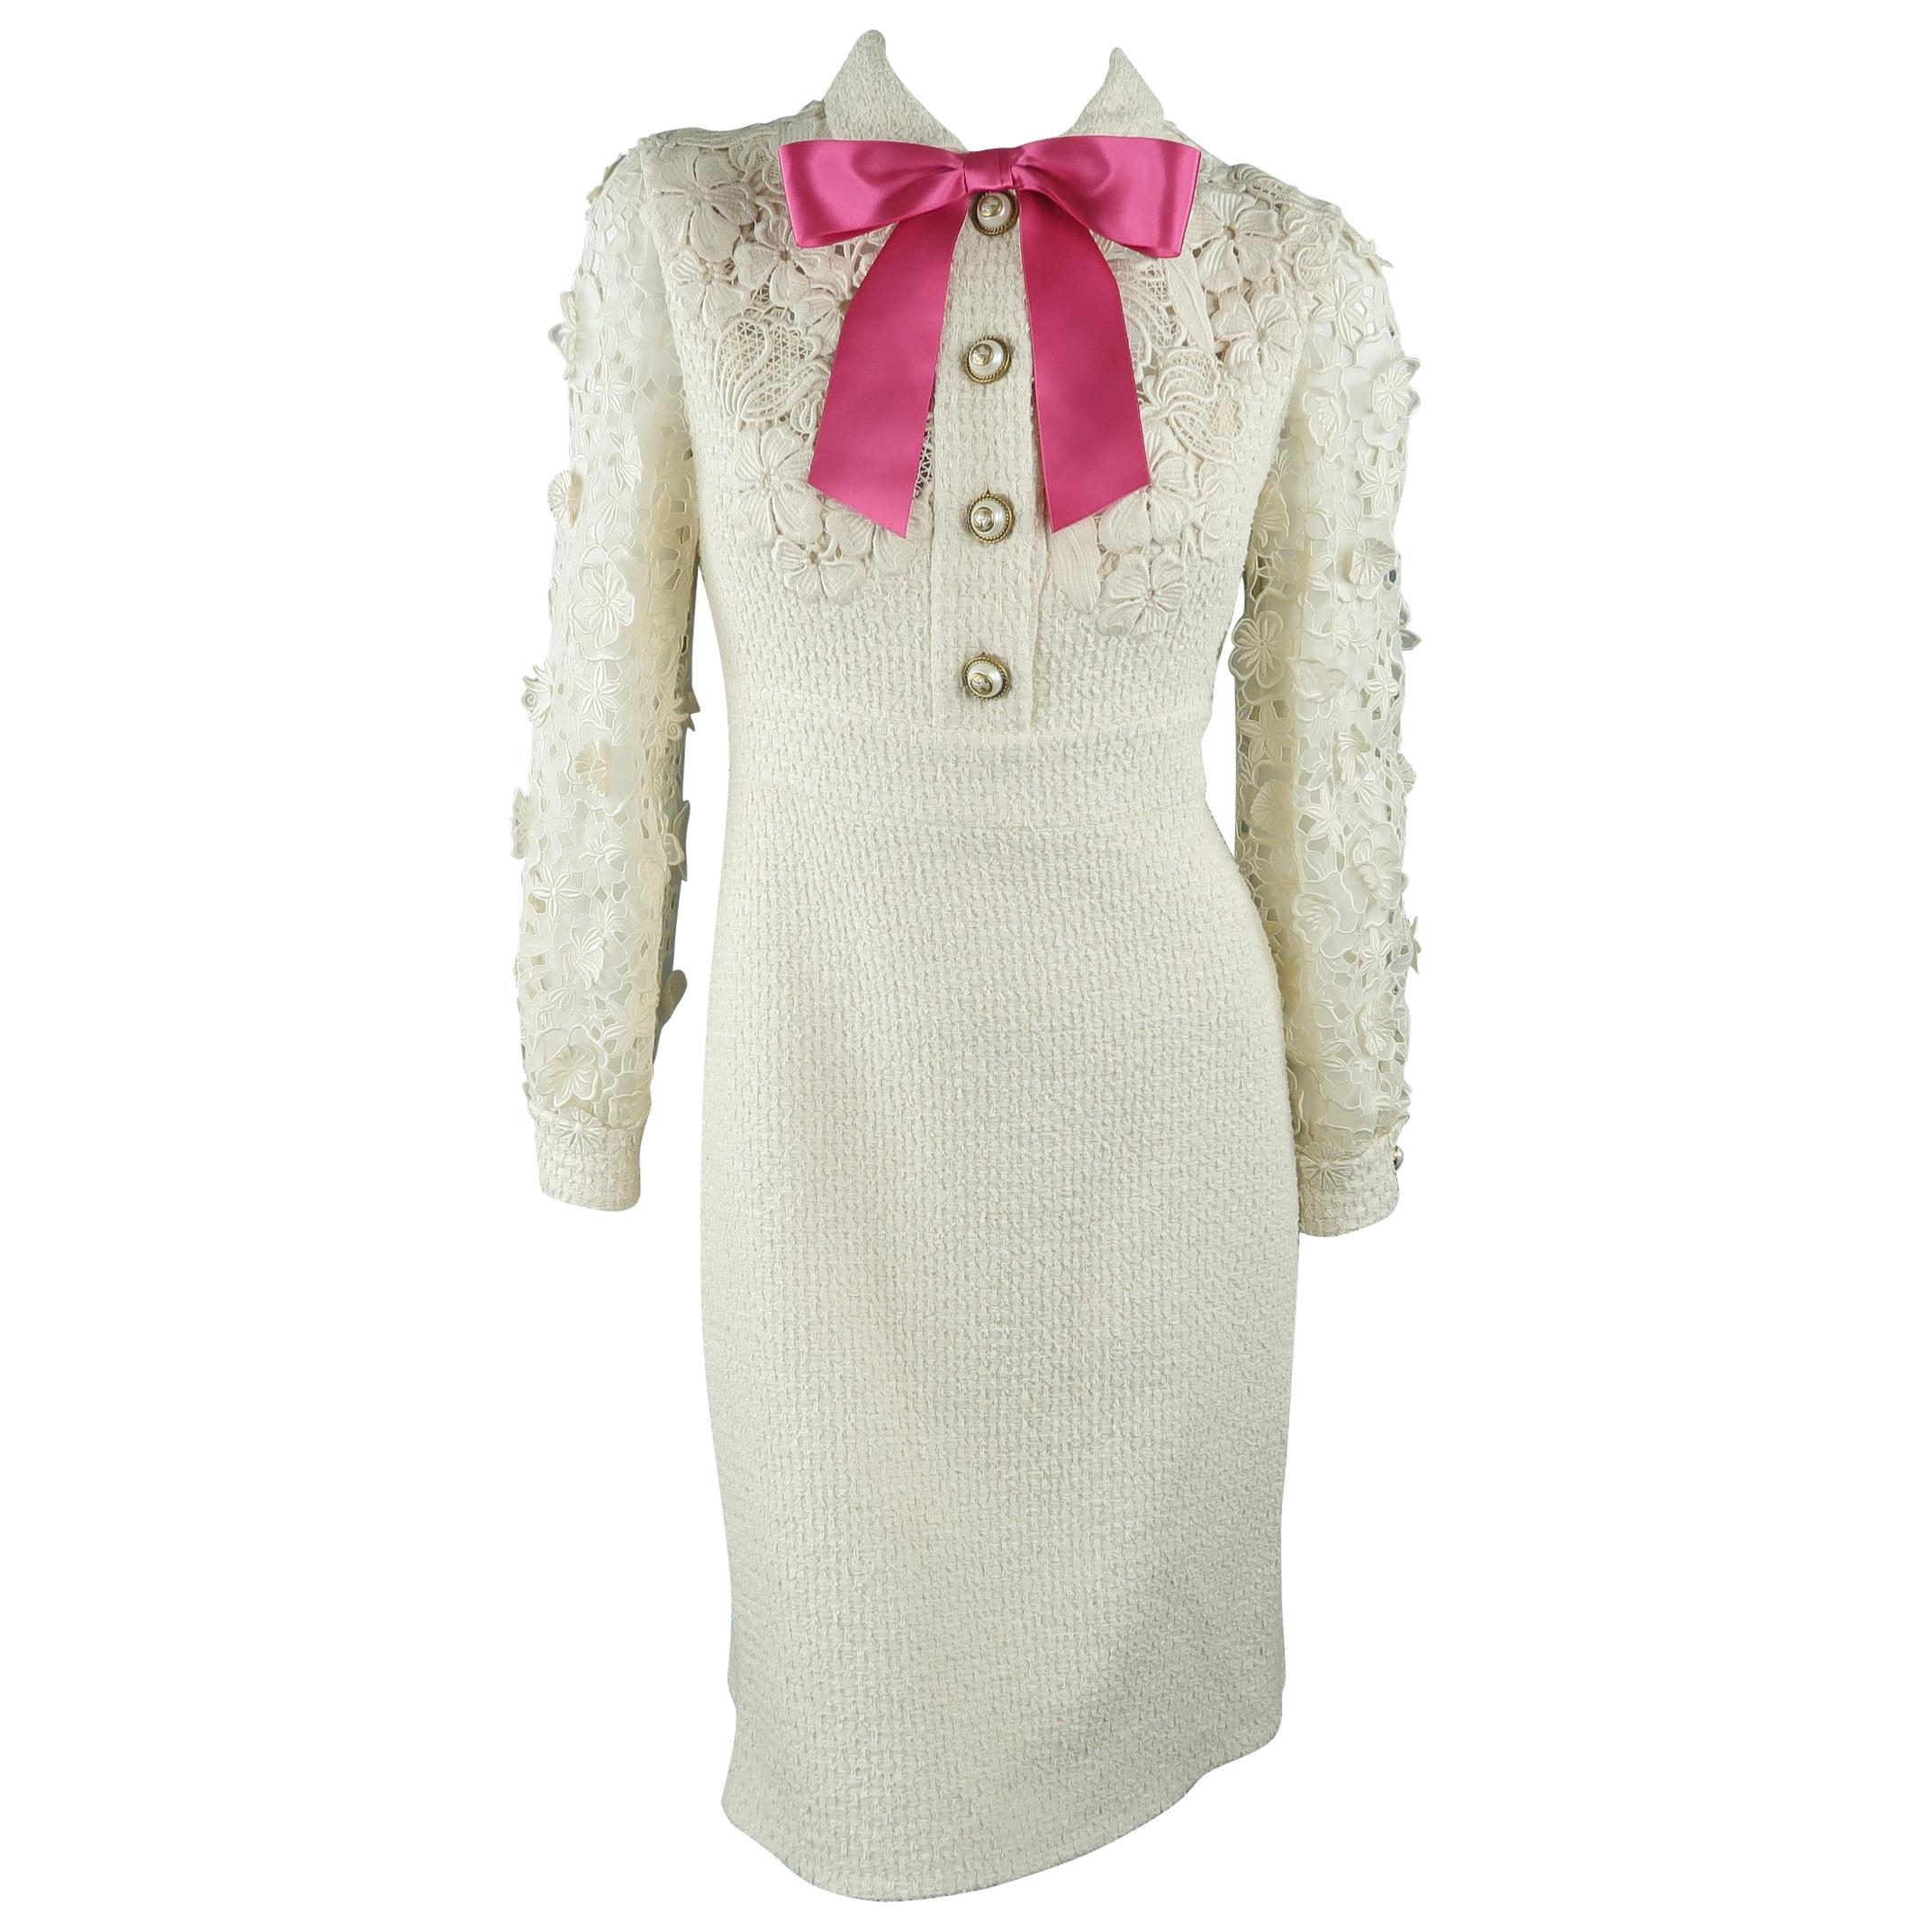 7e9fab5595d Gucci Dress - Cream Tweed Lace Sleeve Pink Bow Cocktail Dress at 1stdibs